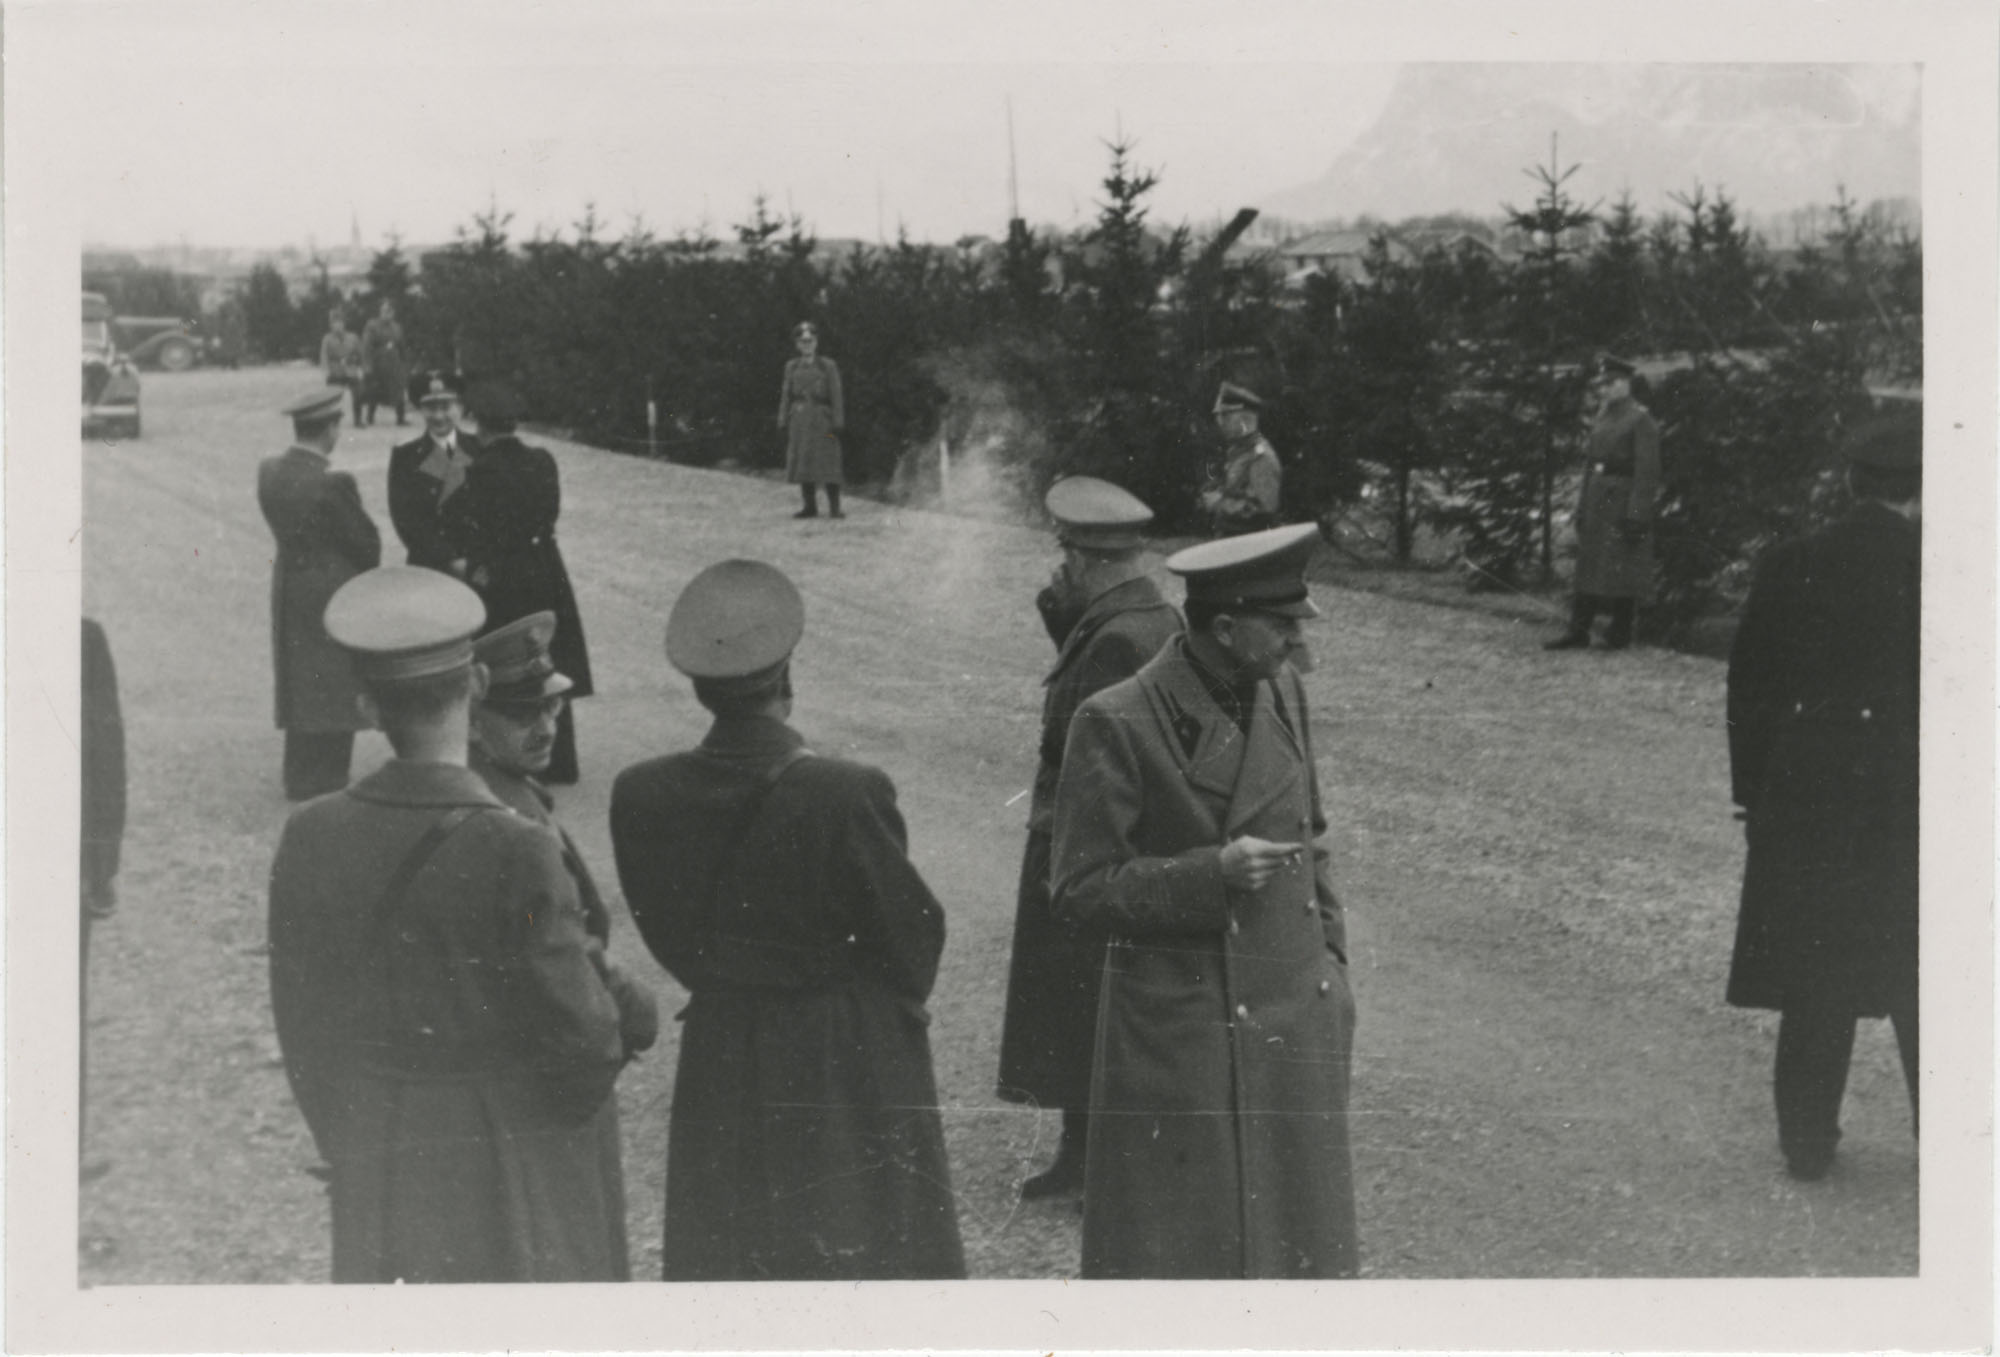 Mario Pansa greeting military personnel, Photograph 9